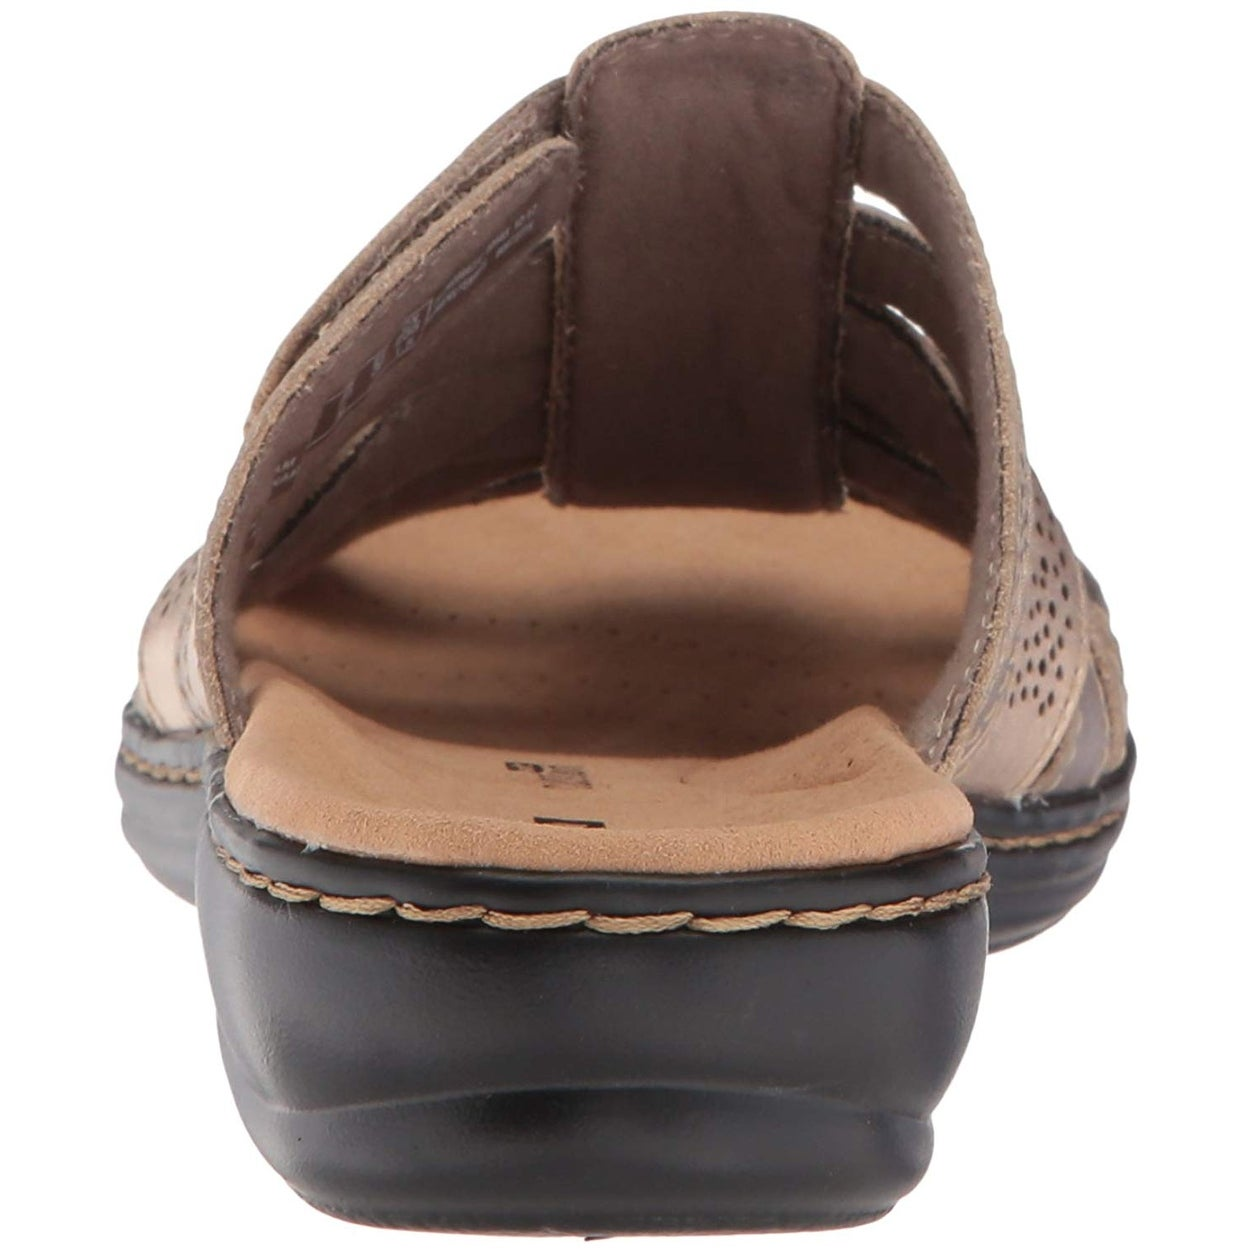 ddf5944a5dc2 Shop CLARKS Womens leisa fields Open Toe Casual Slide Sandals - Ships To  Canada - Overstock - 20722183